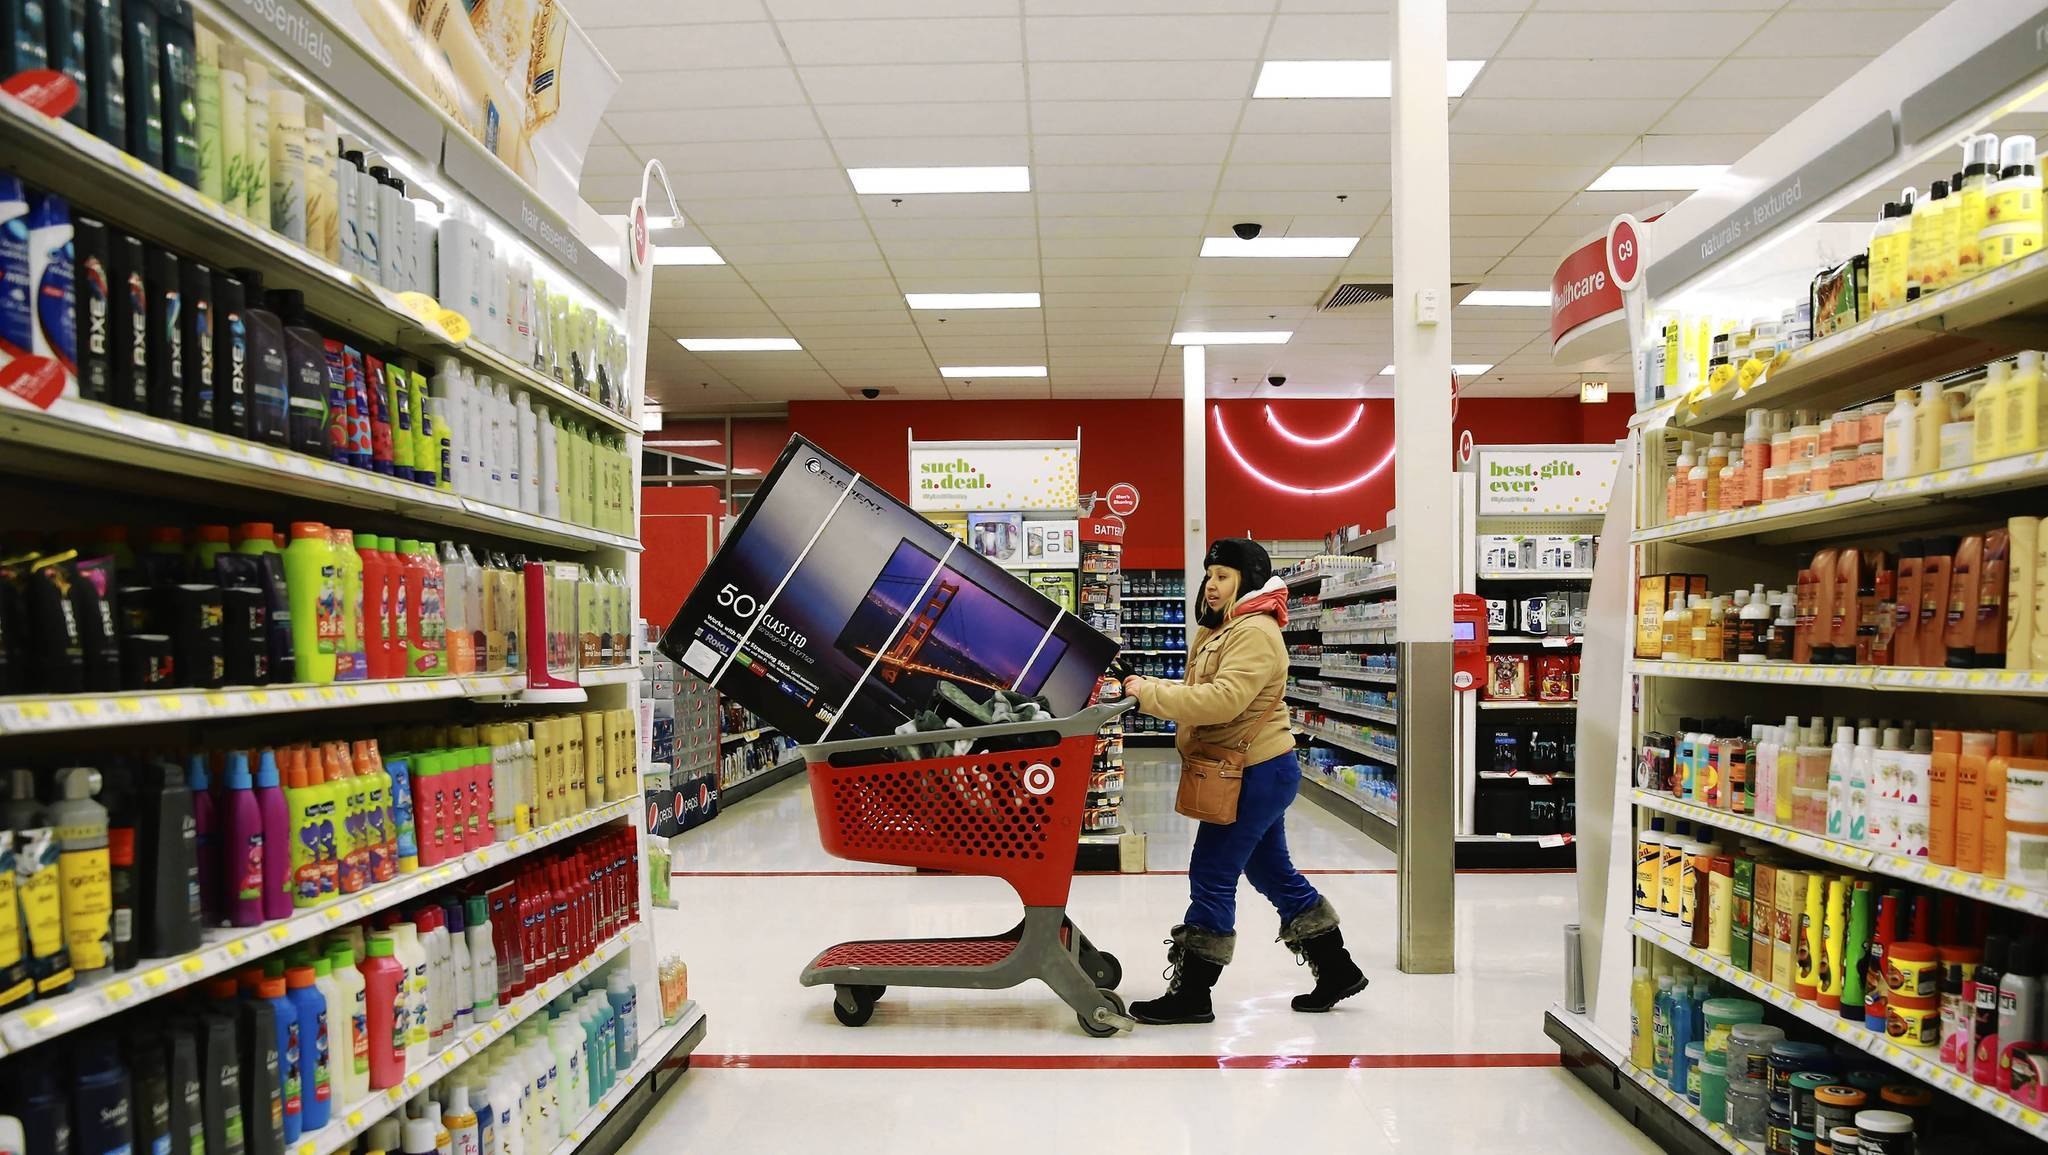 Vicky Varzenas, 28, walks past an aisle with television in her cart at the Target store on North Elston Avenue in Chicago, which opened at 8 p.m. on Thanksgiving.